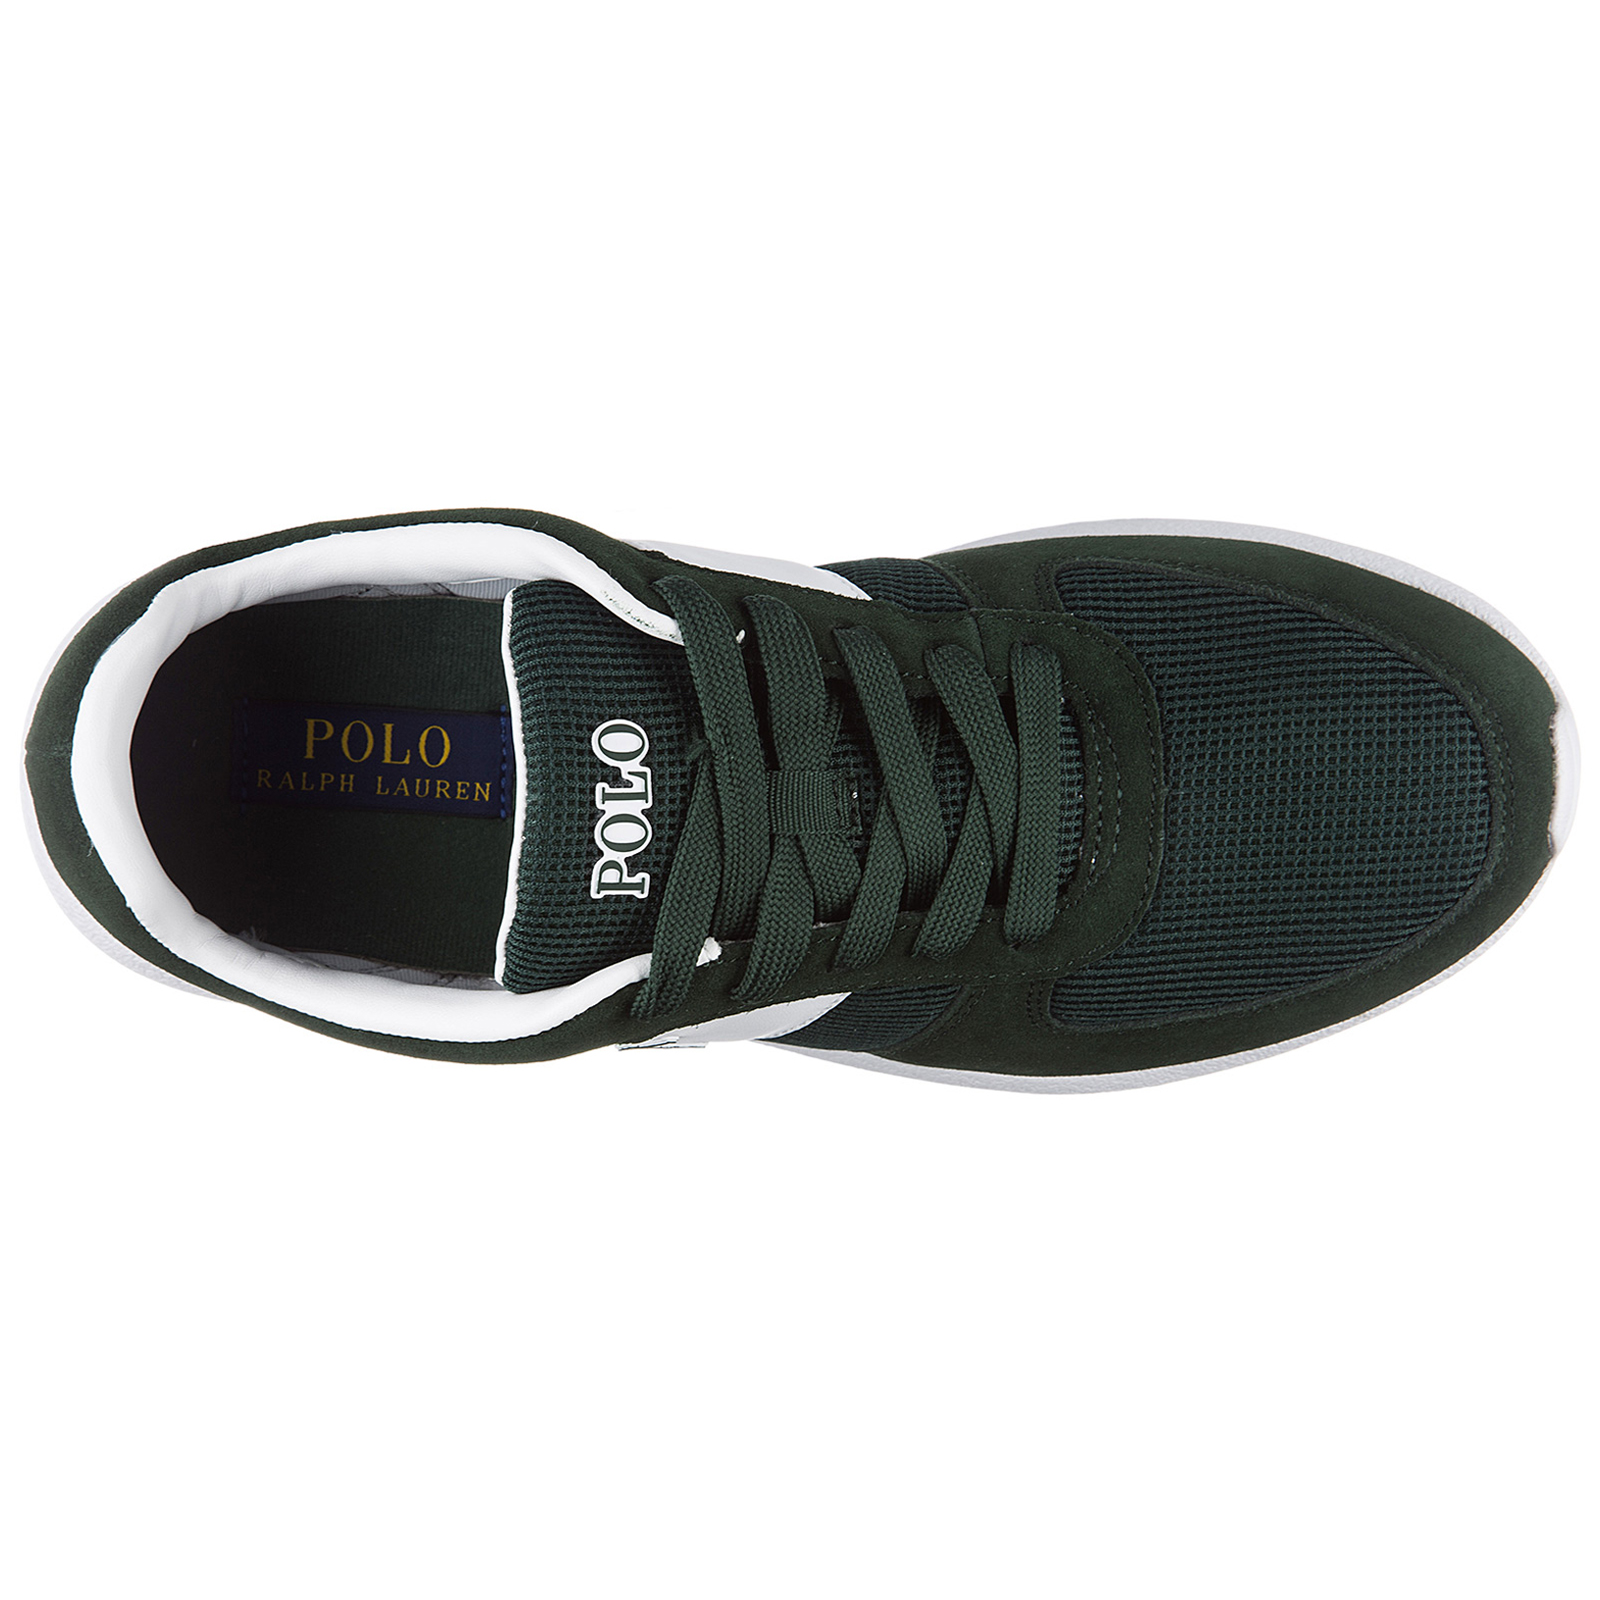 Men's shoes suede trainers sneakers cordell